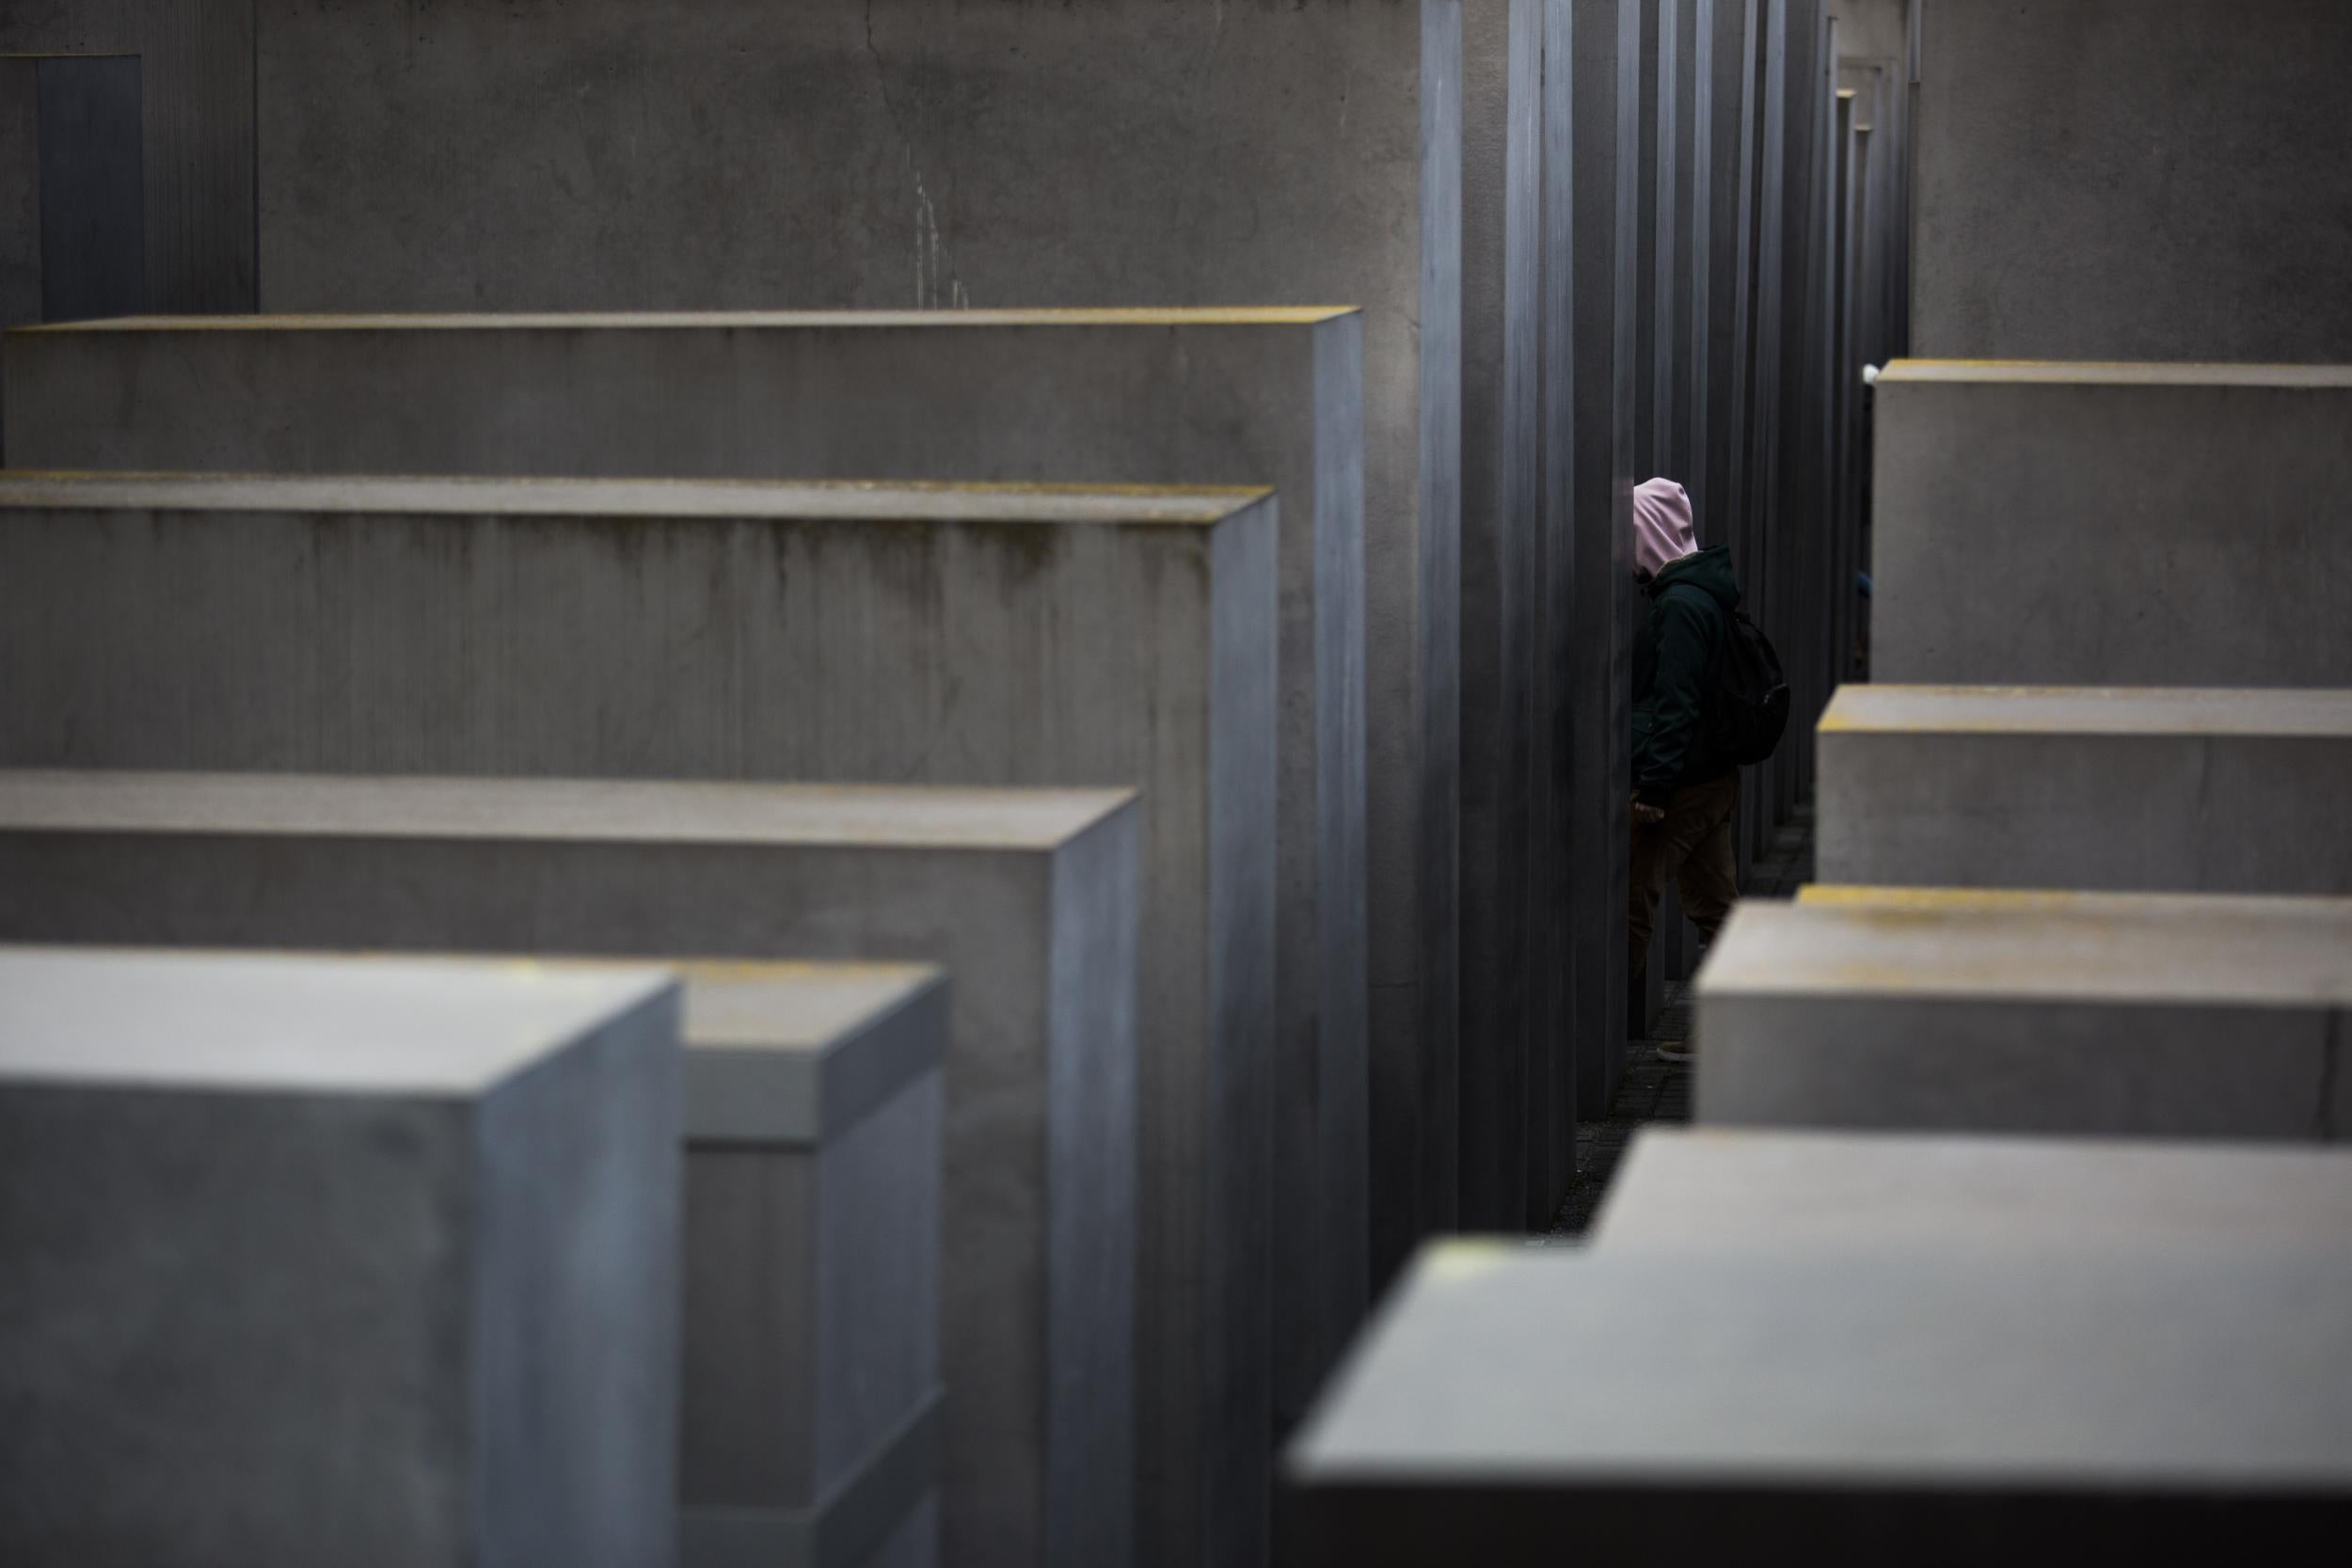 MPs are dragging their feet over a new Holocaust memorial – yet we need one more urgently than ever